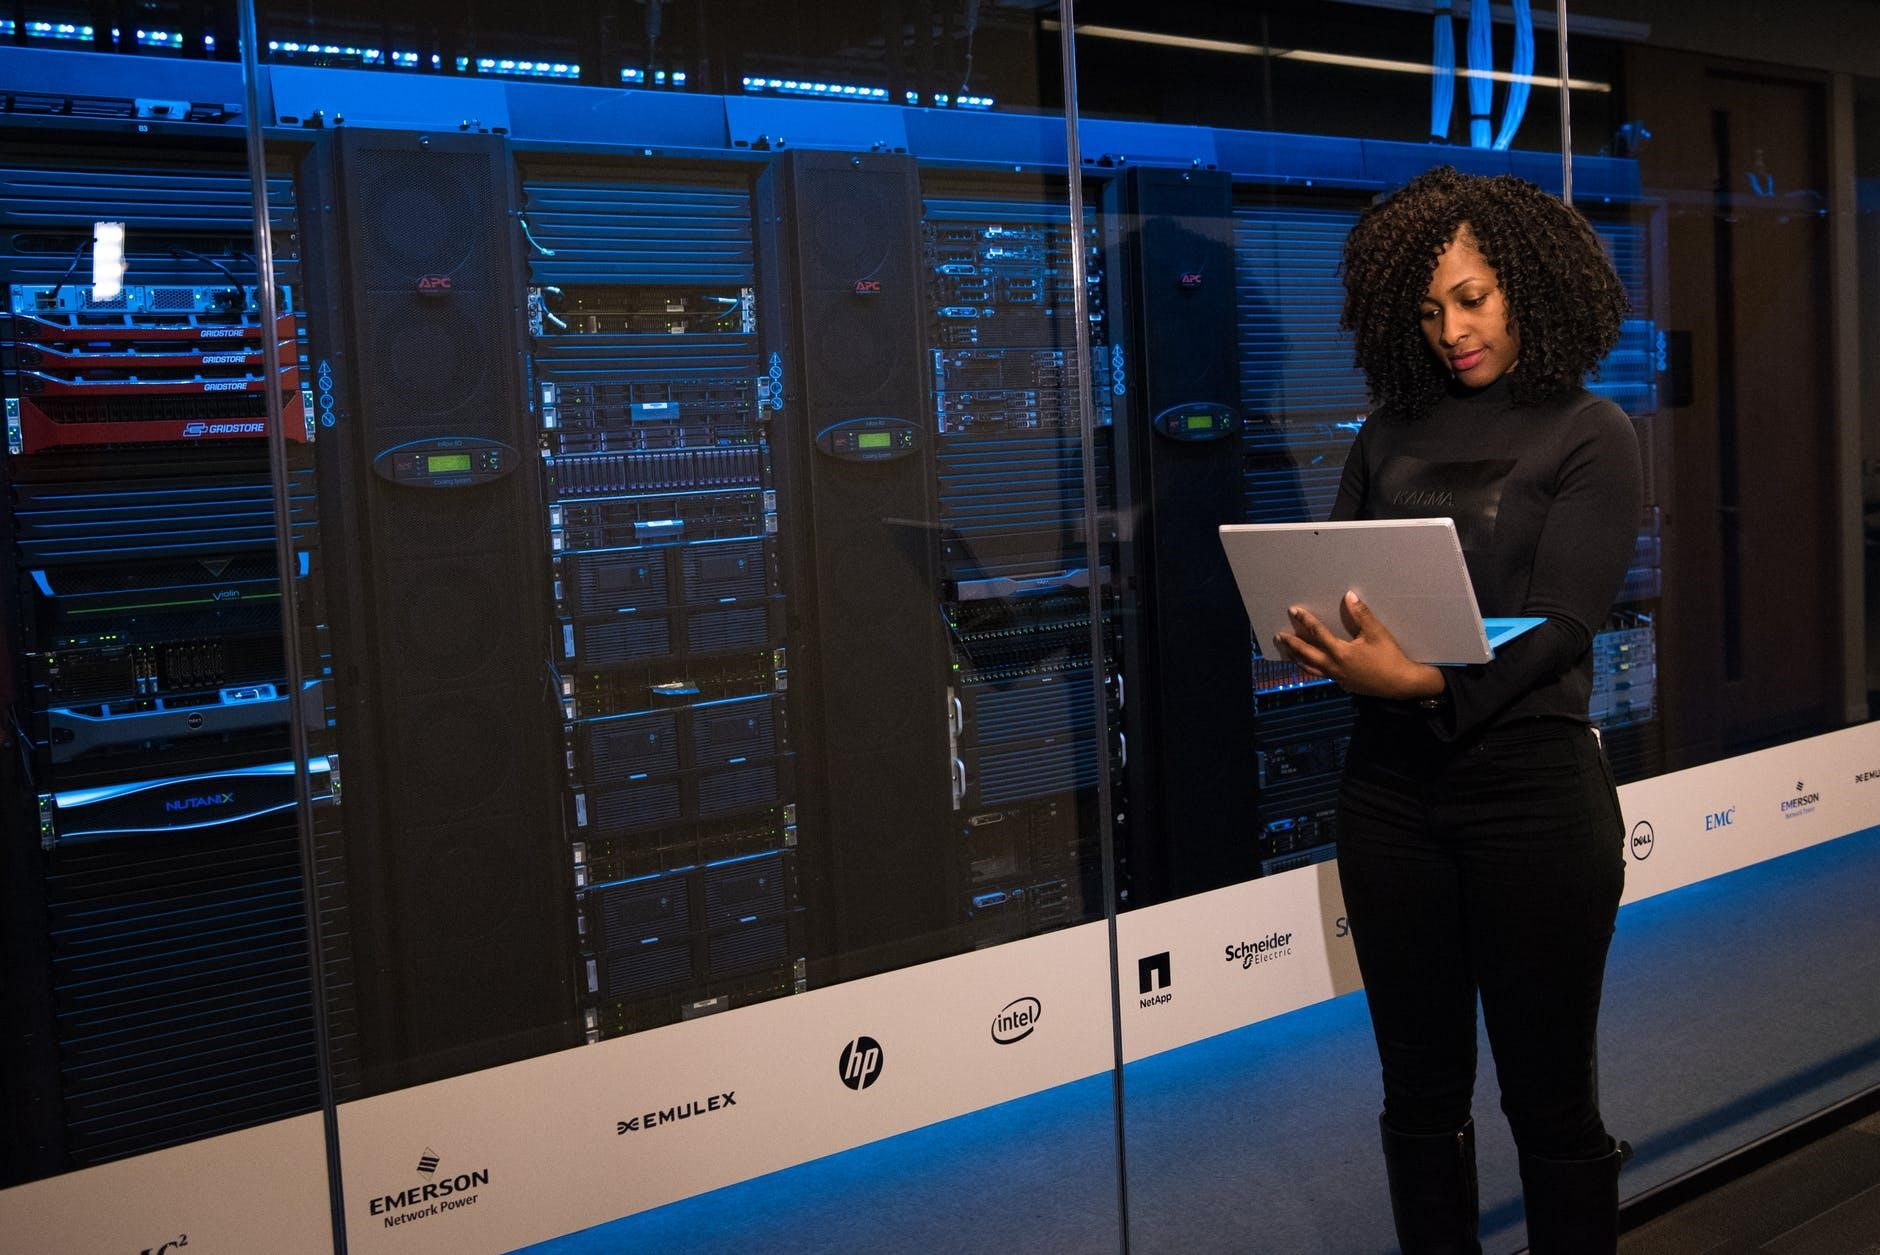 New Yorkers are Facing a Training Gap for Technology Jobs